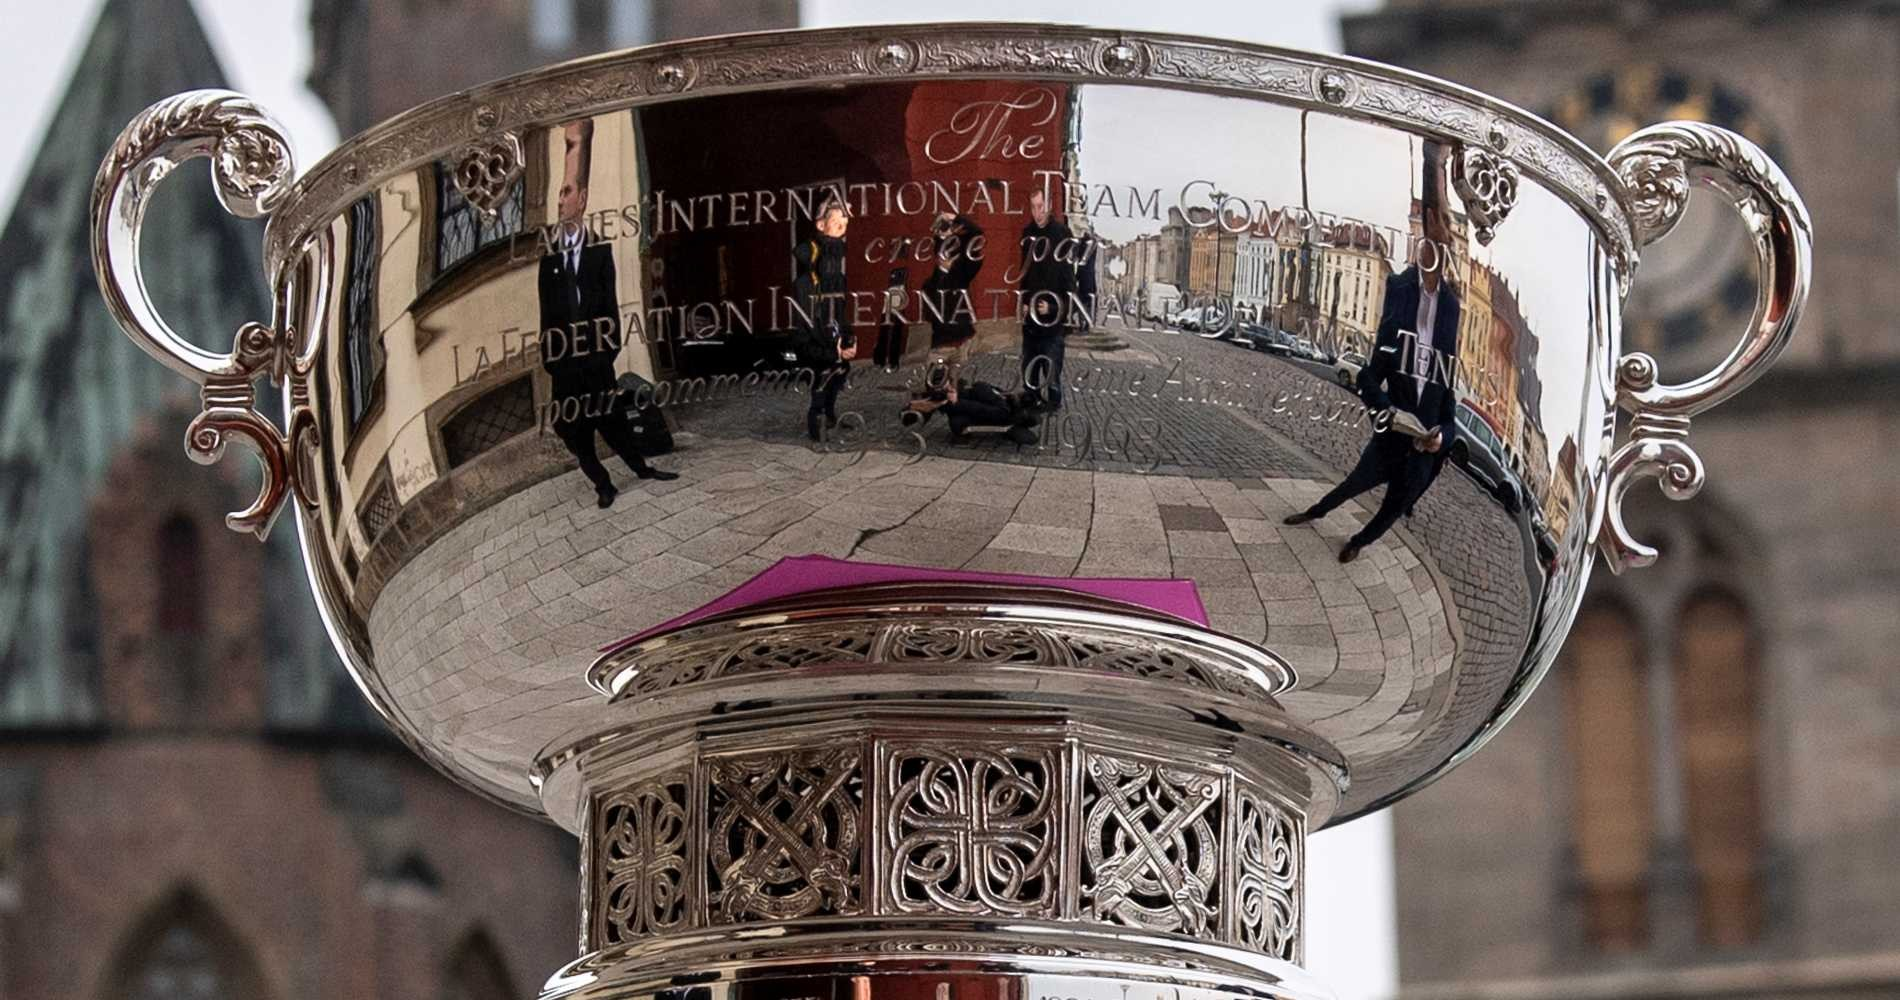 Fed Cup, trophy